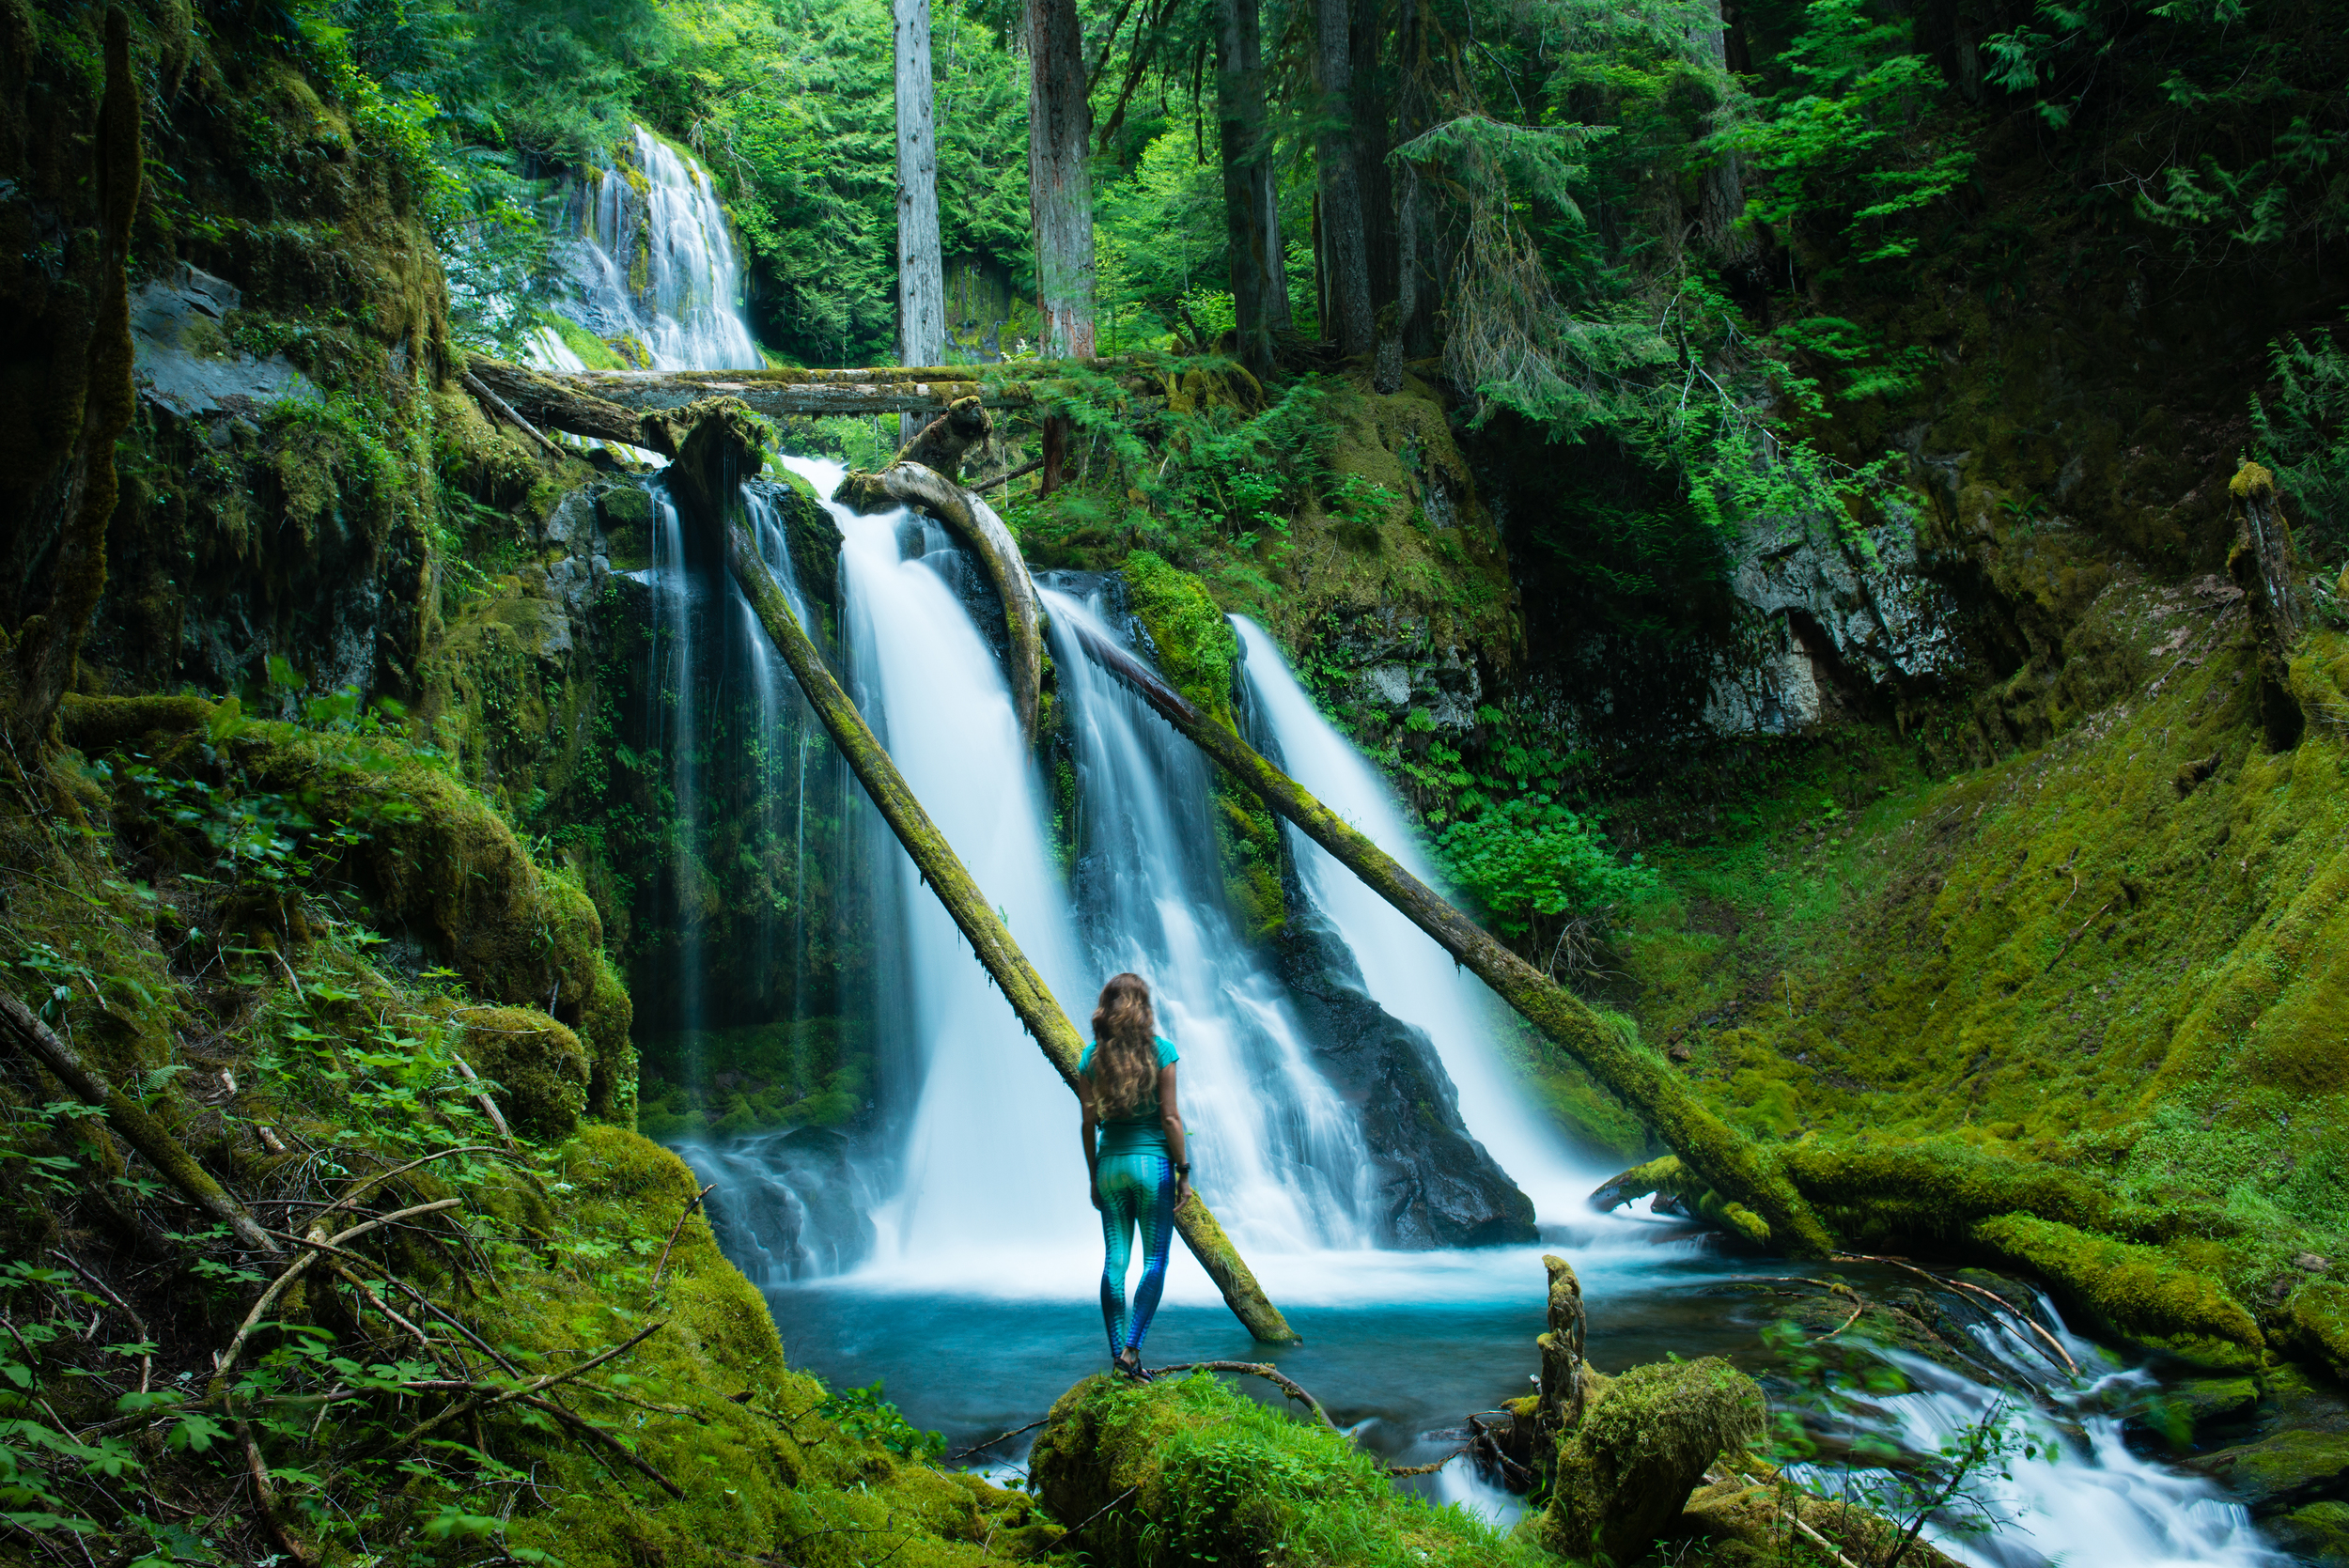 Finding serenity deep in the forest of Washington